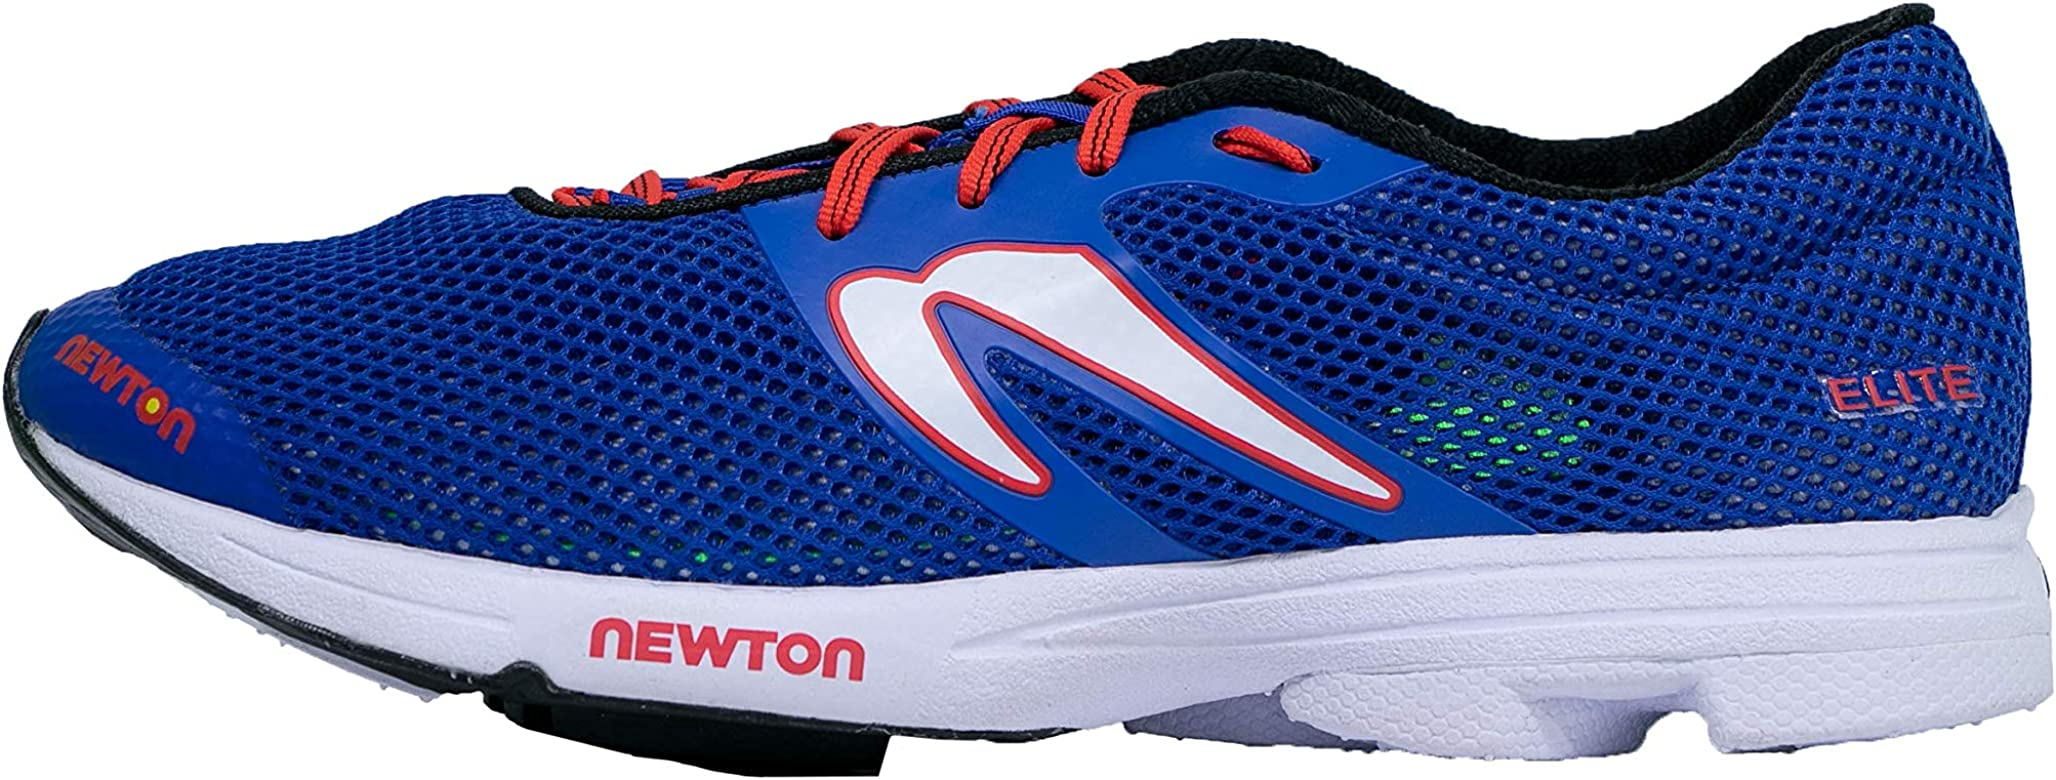 Newton Distance Elite Zapatillas para Correr - SS20-41: Amazon.es: Zapatos y complementos